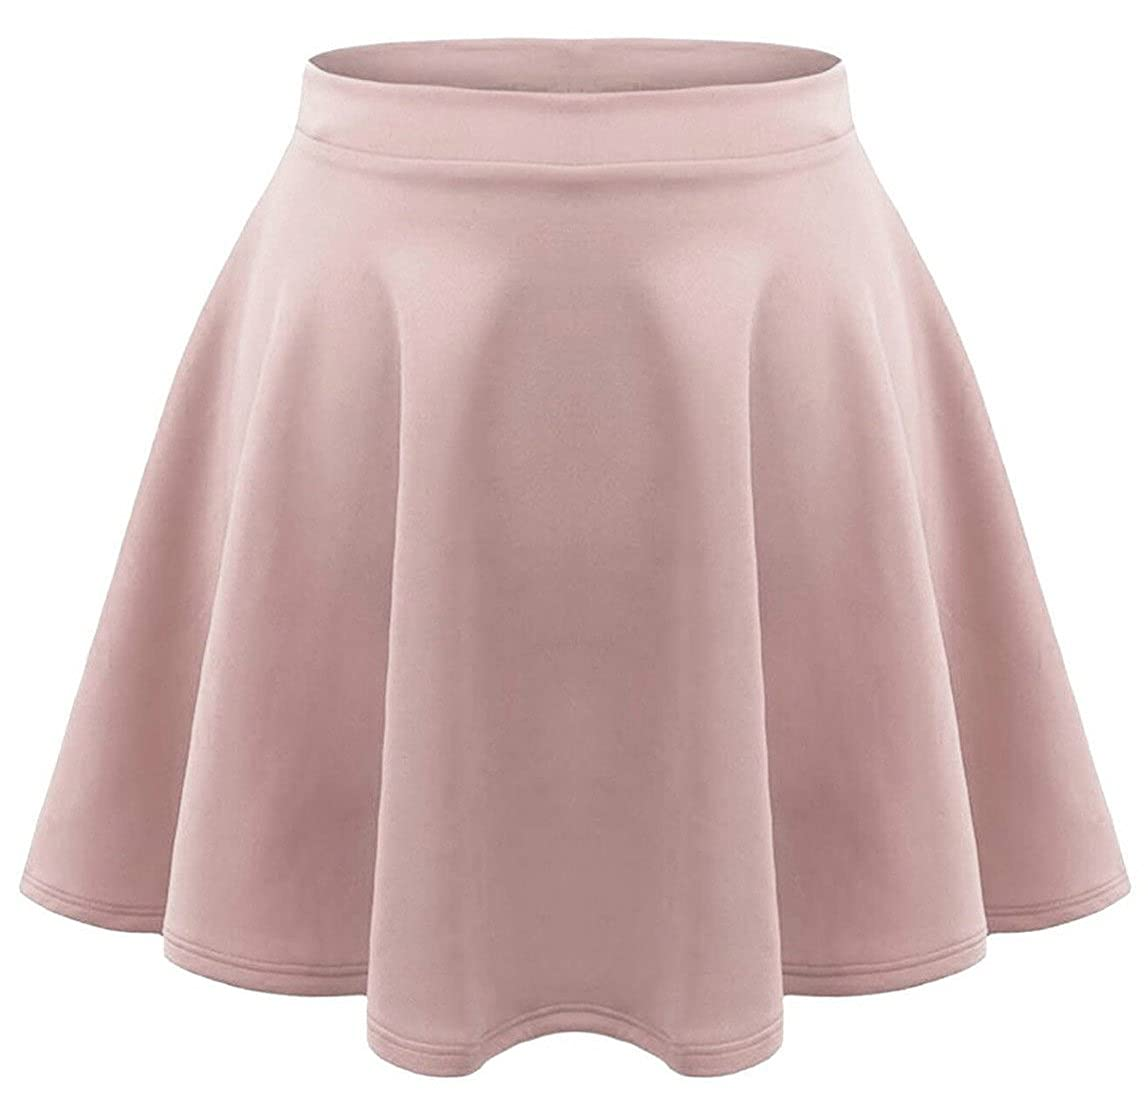 7fcfeaebcb Red Olives Kids Girls Children High Waisted Stretch Plain Flippy Flared  Short Skater Skirt Teens 7-8 Years, 9-10 Years, 11-12 Years, 13 Years